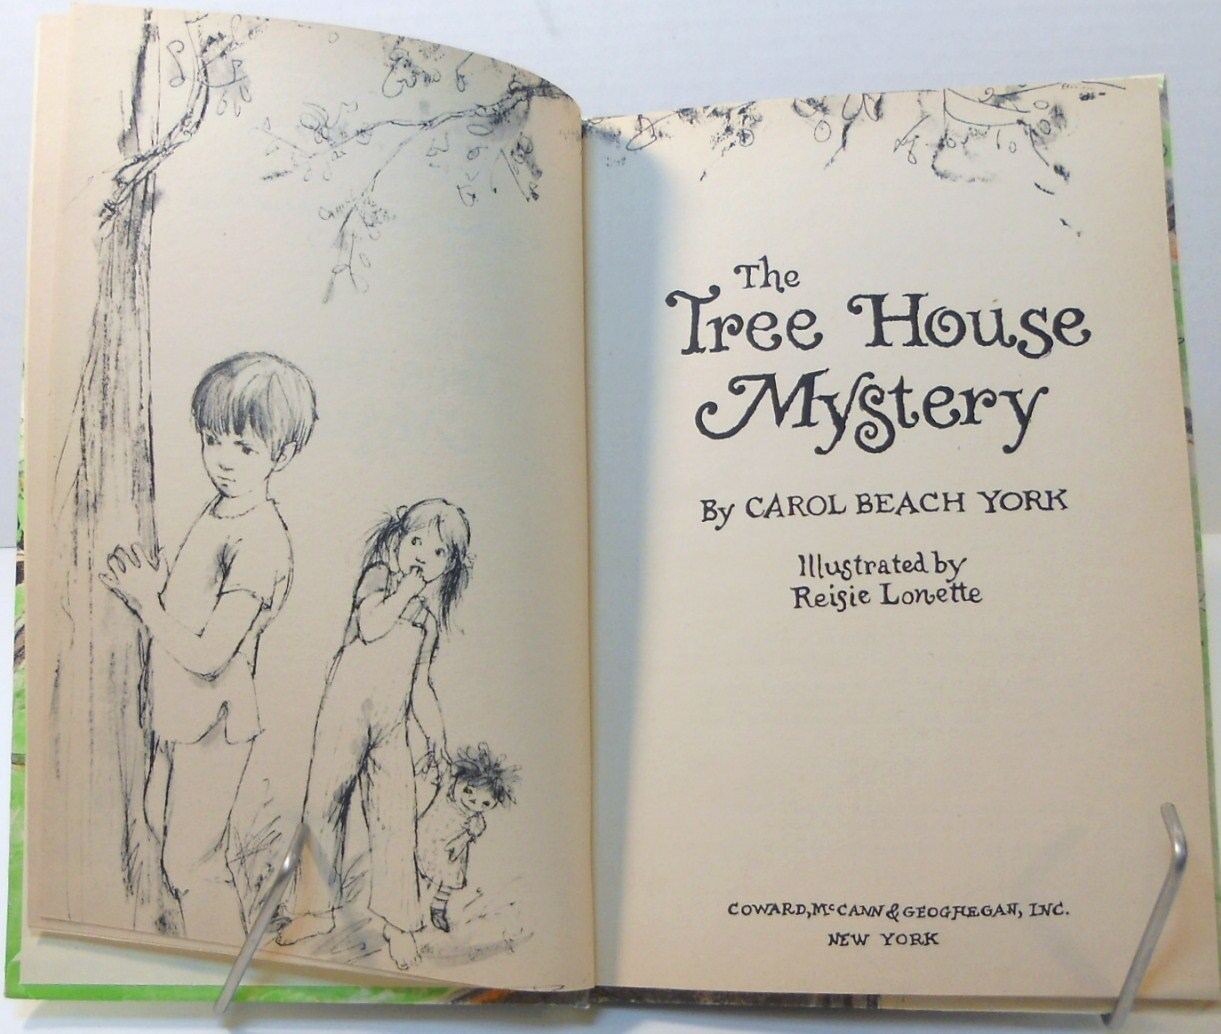 '.The Tree House Mystery 1973.'